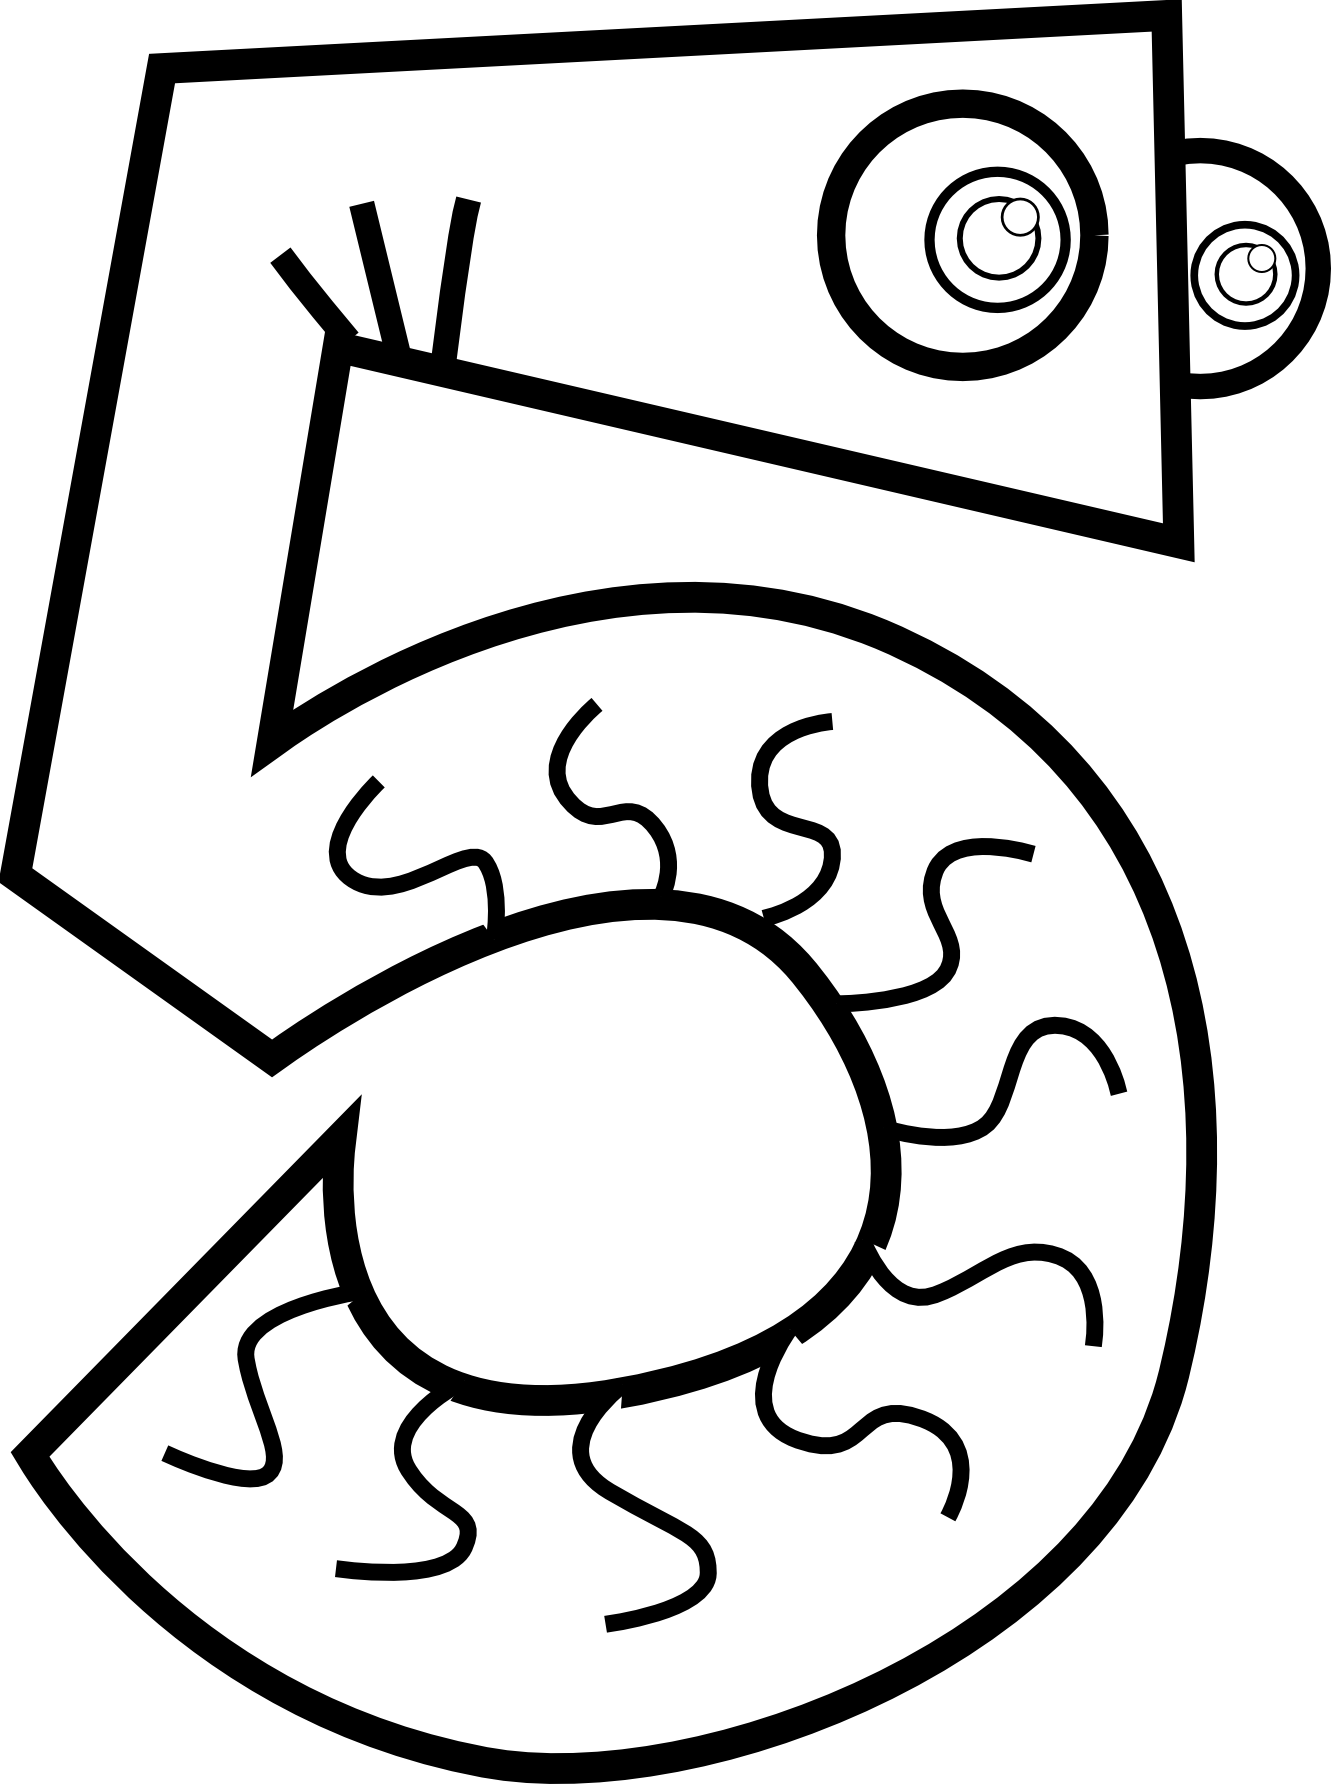 Free Number 3 Clipart Black And White, Download Free Clip.